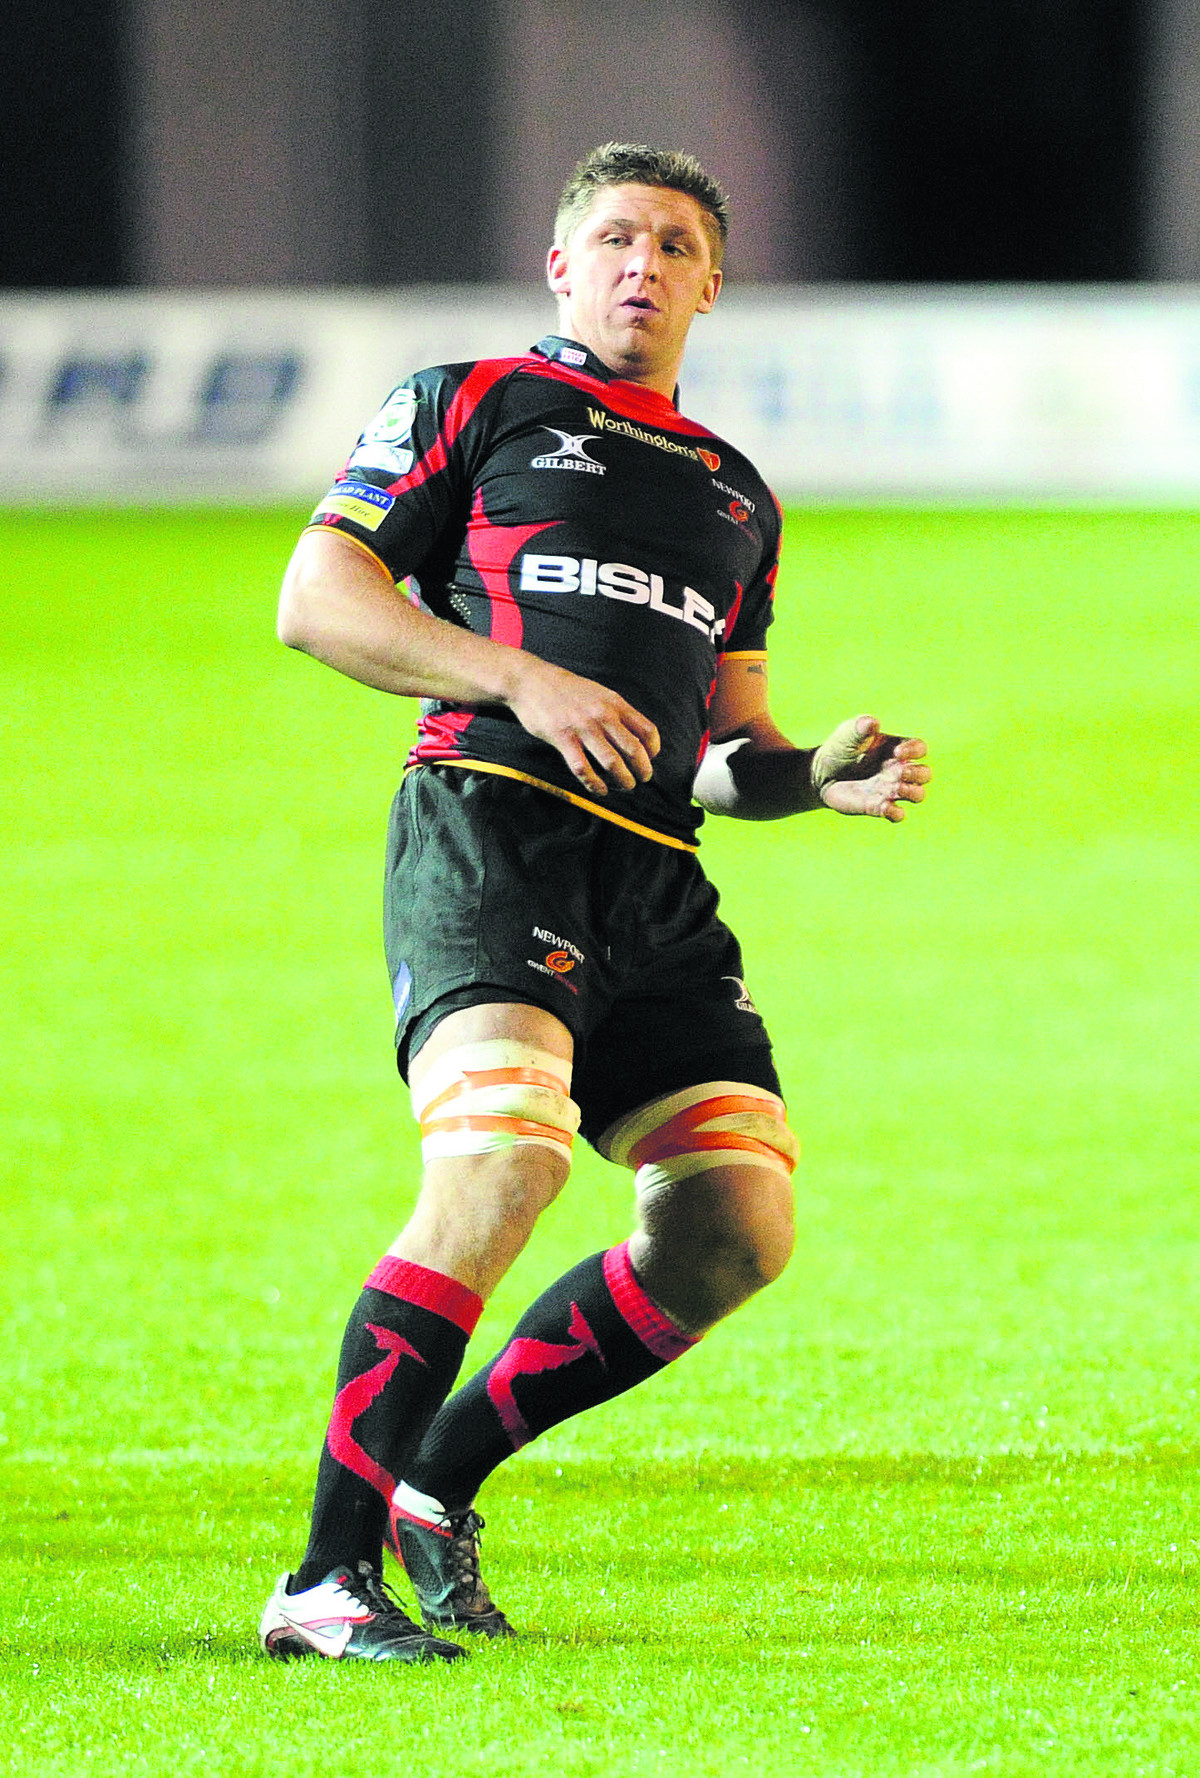 London Welsh's latest capture, Darren Waters, says he can't wait for their Aviva Premiership campaign to get started after signing from Newport Gwent Dragons